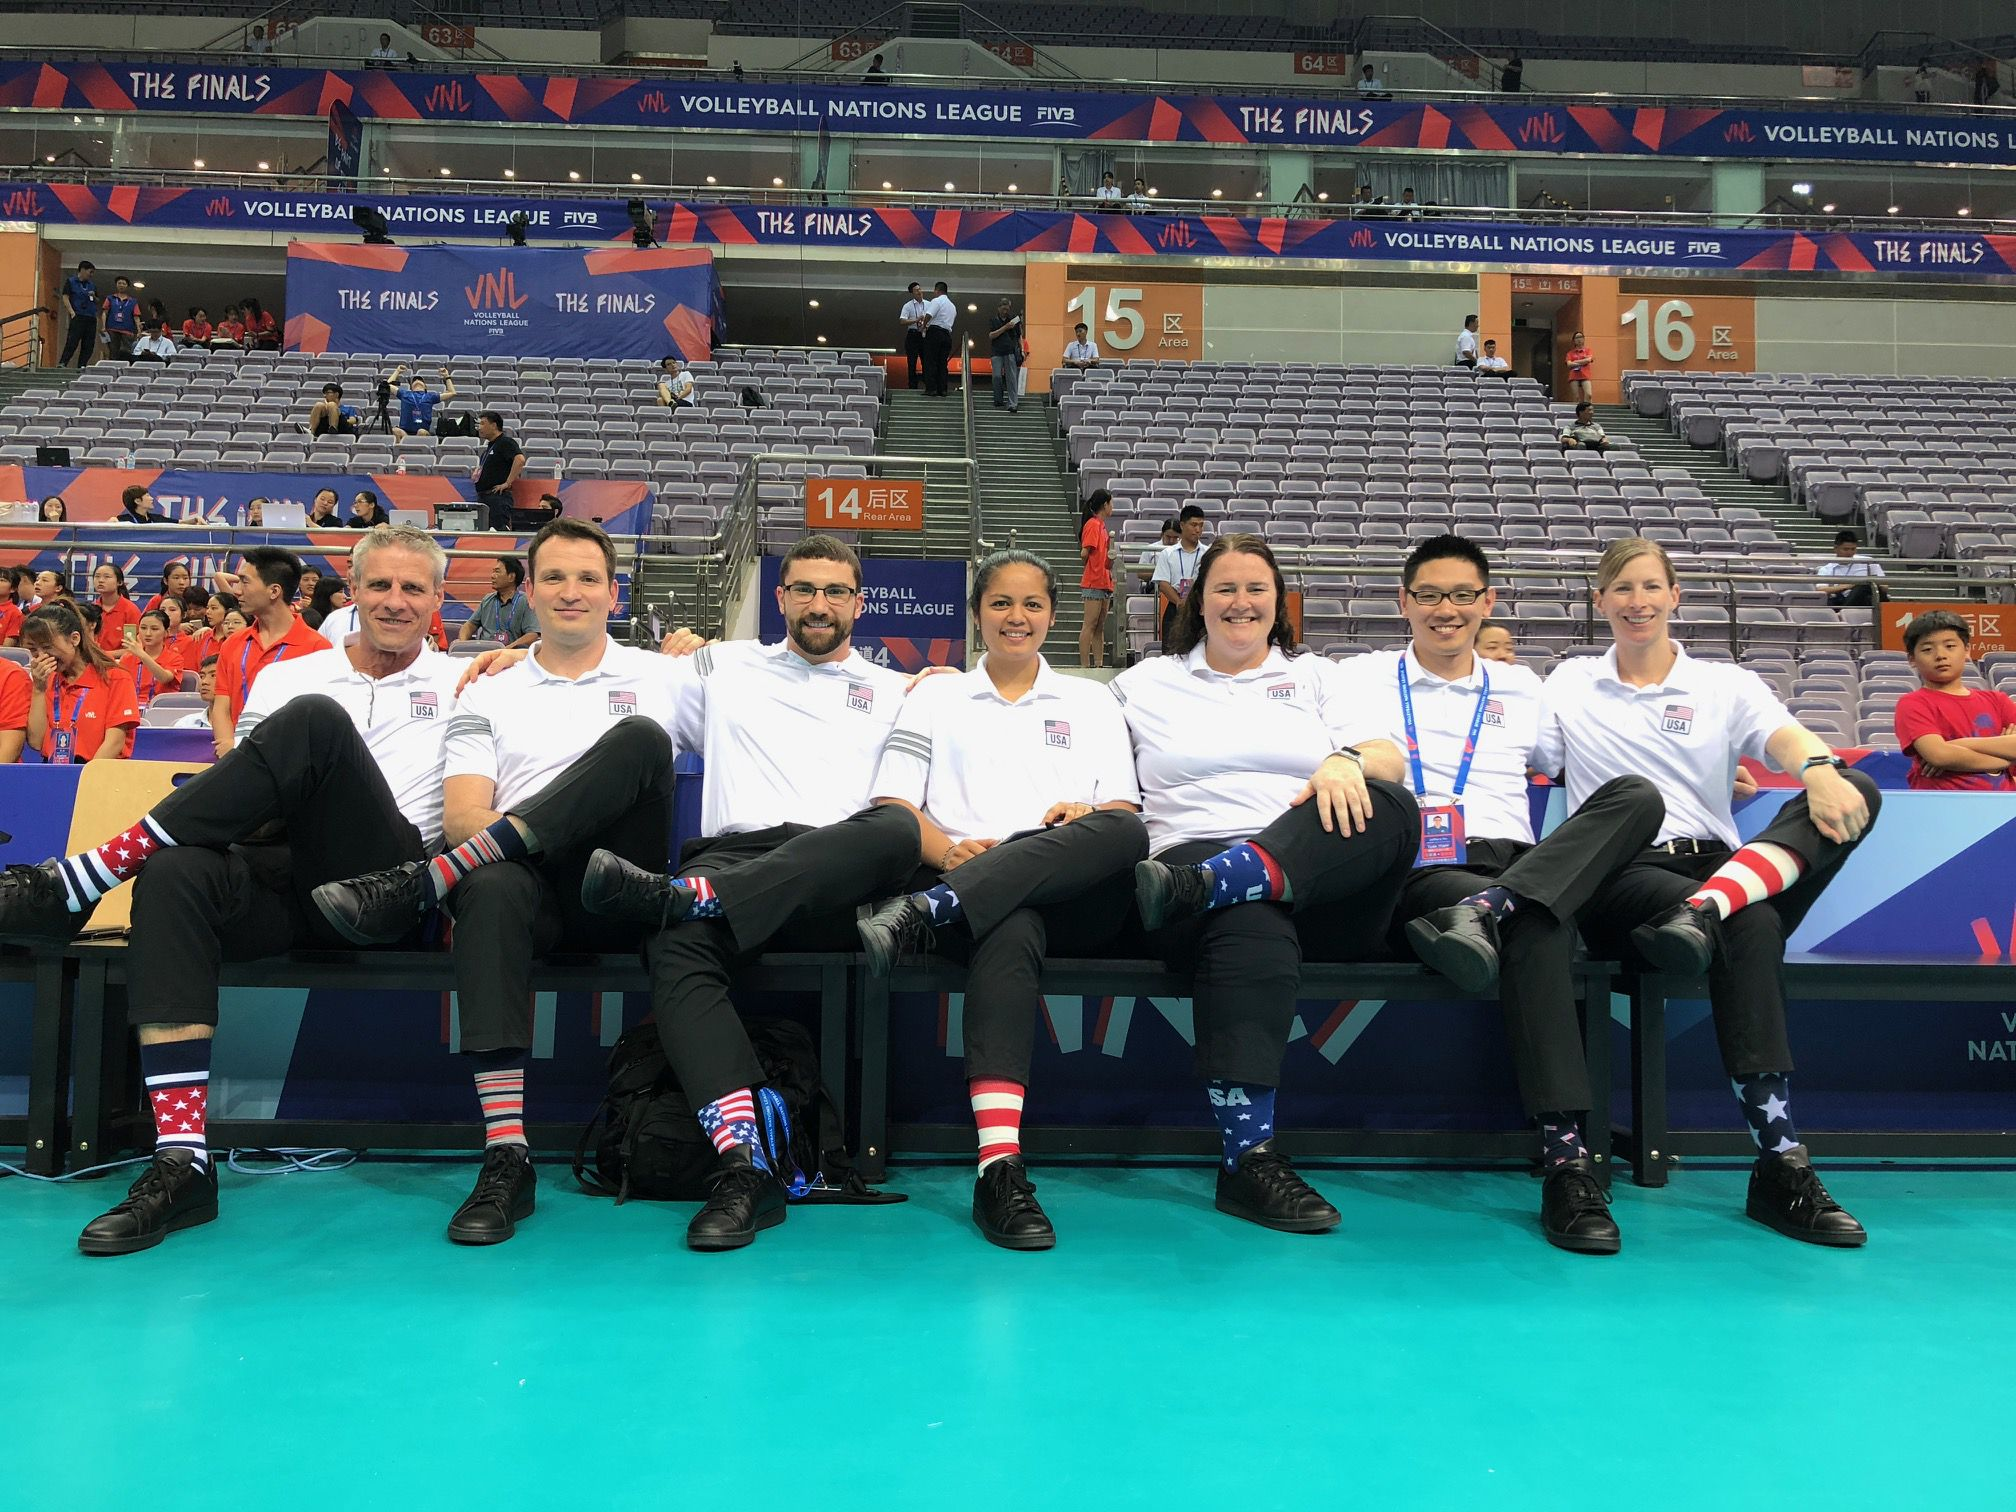 Erin Virtue (third from right, pictured with the rest of the Olympic coaching staff), who starred at setter for St. Francis, is a member of the U.S. women's volleyball national team that will compete in the Olympics this summer in Tokyo.